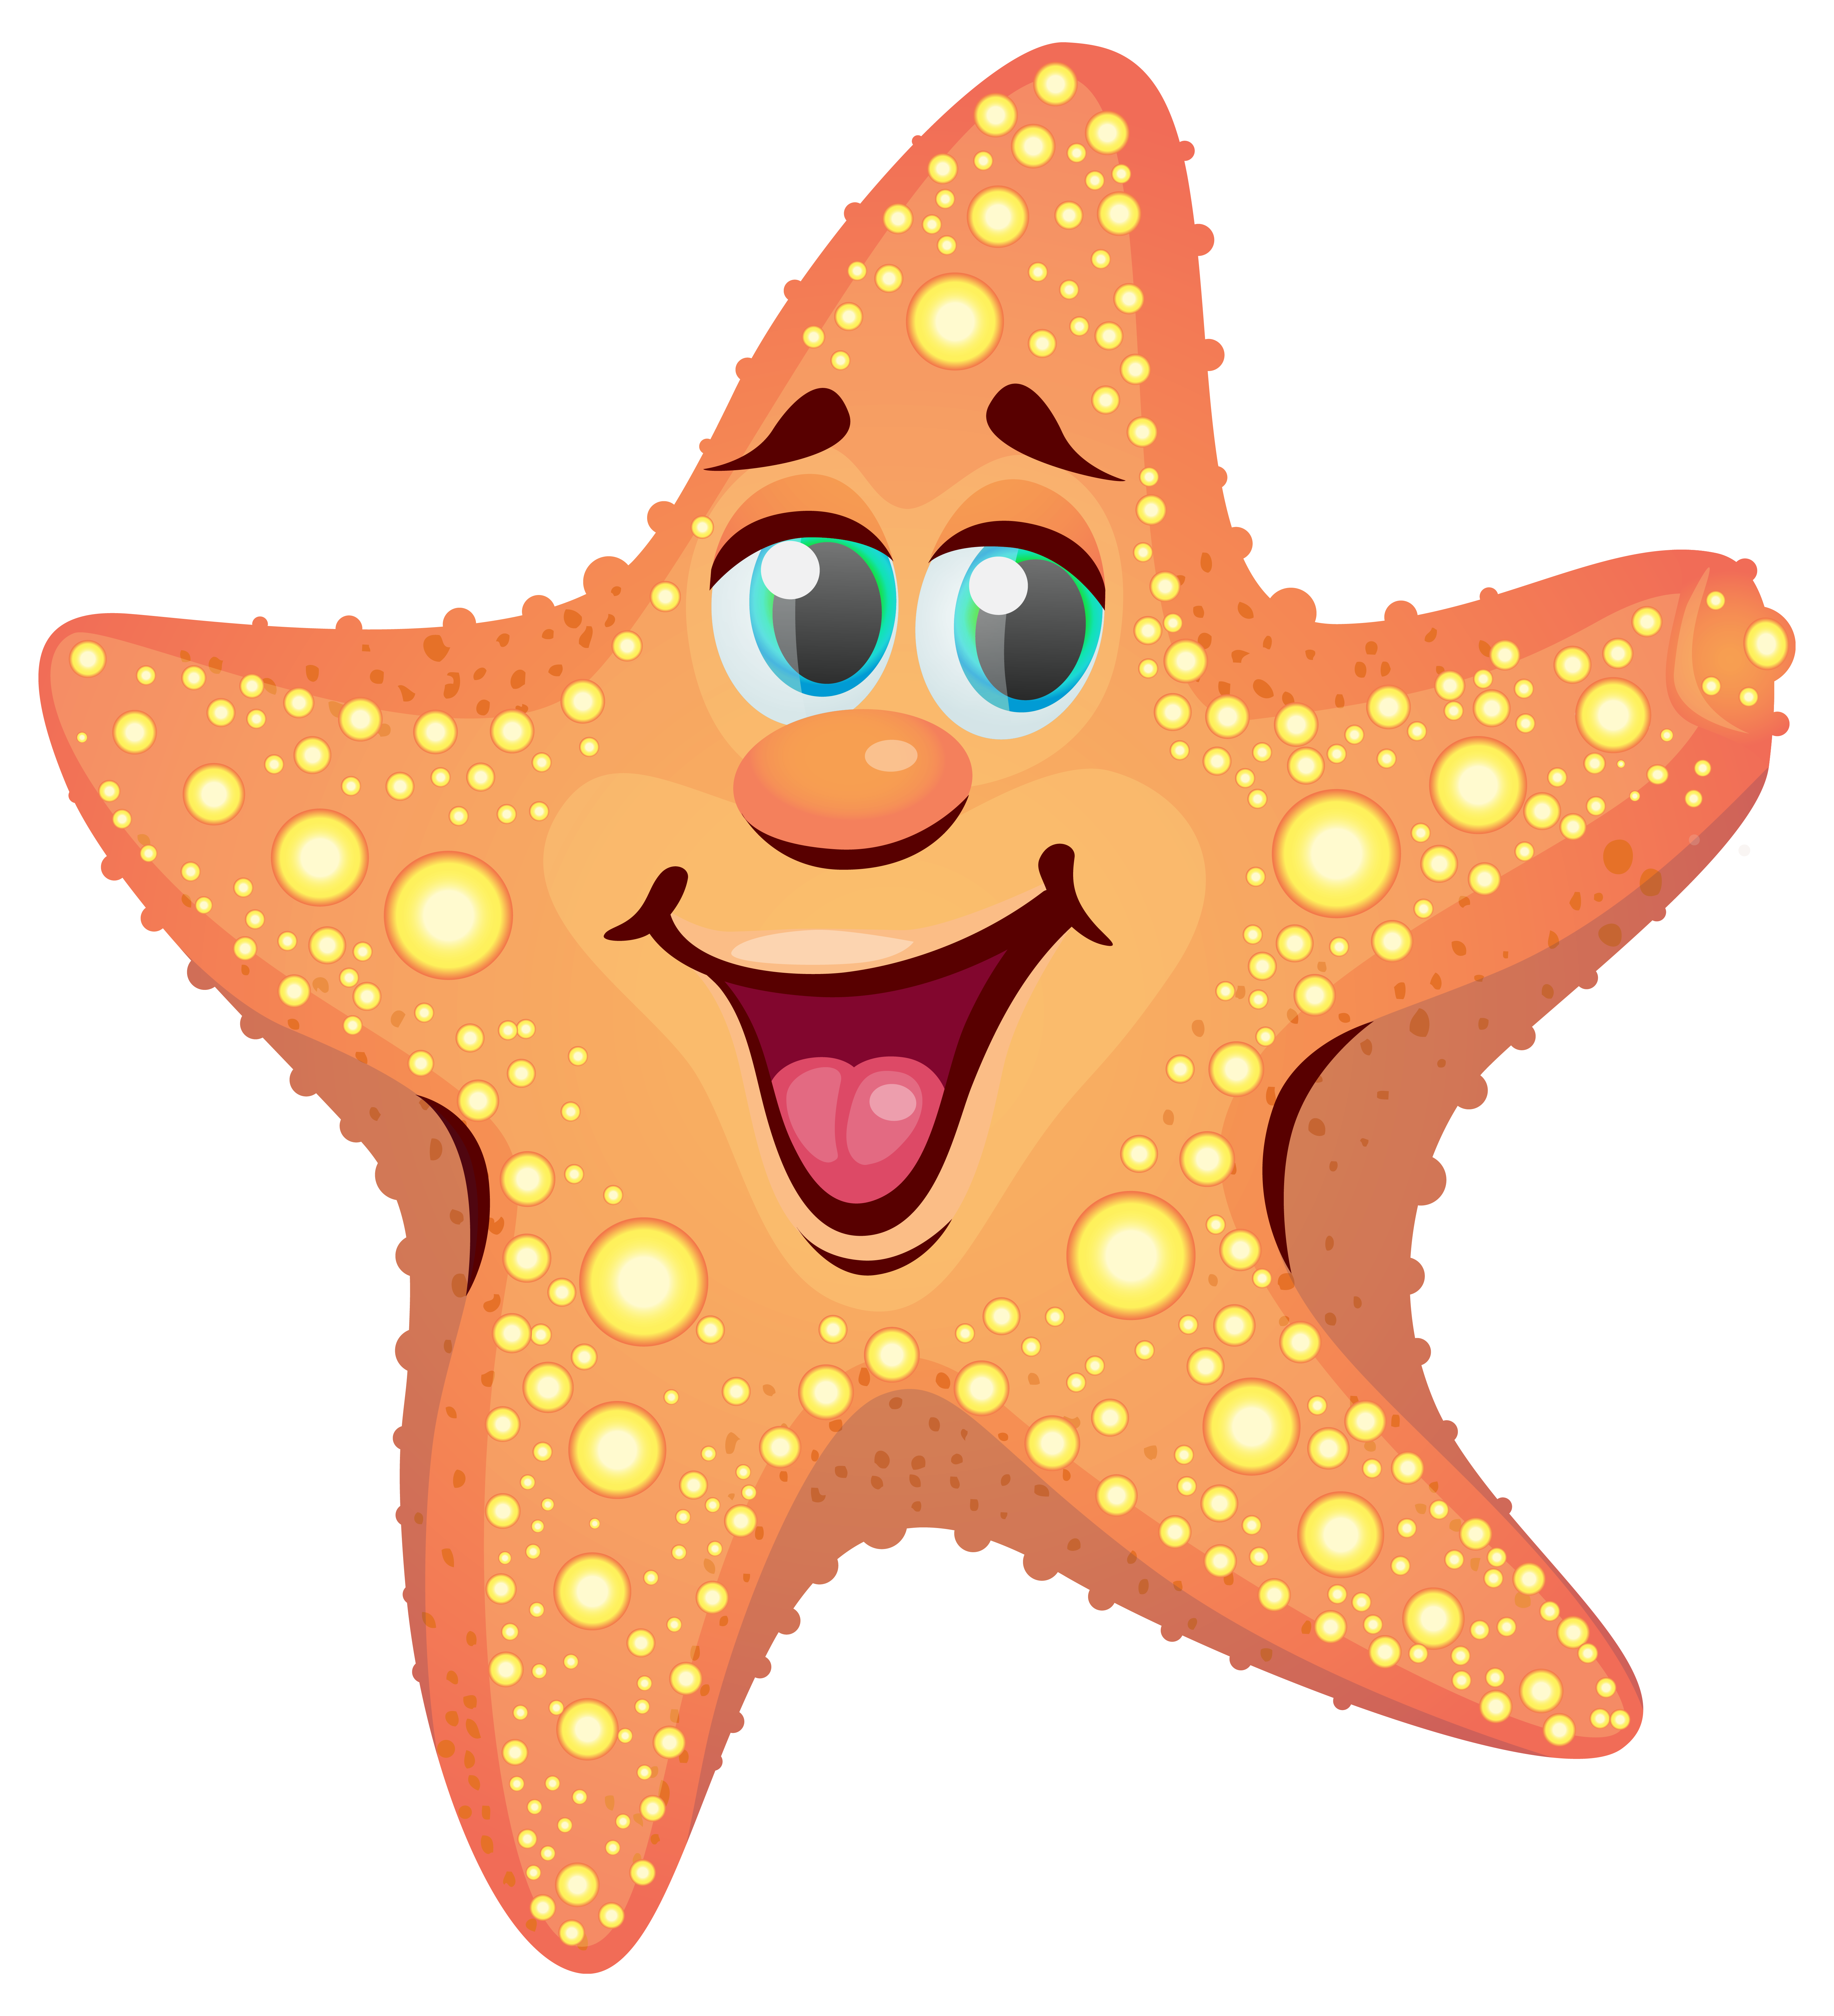 Cartoon starfish clipart image-Cartoon starfish clipart image-16